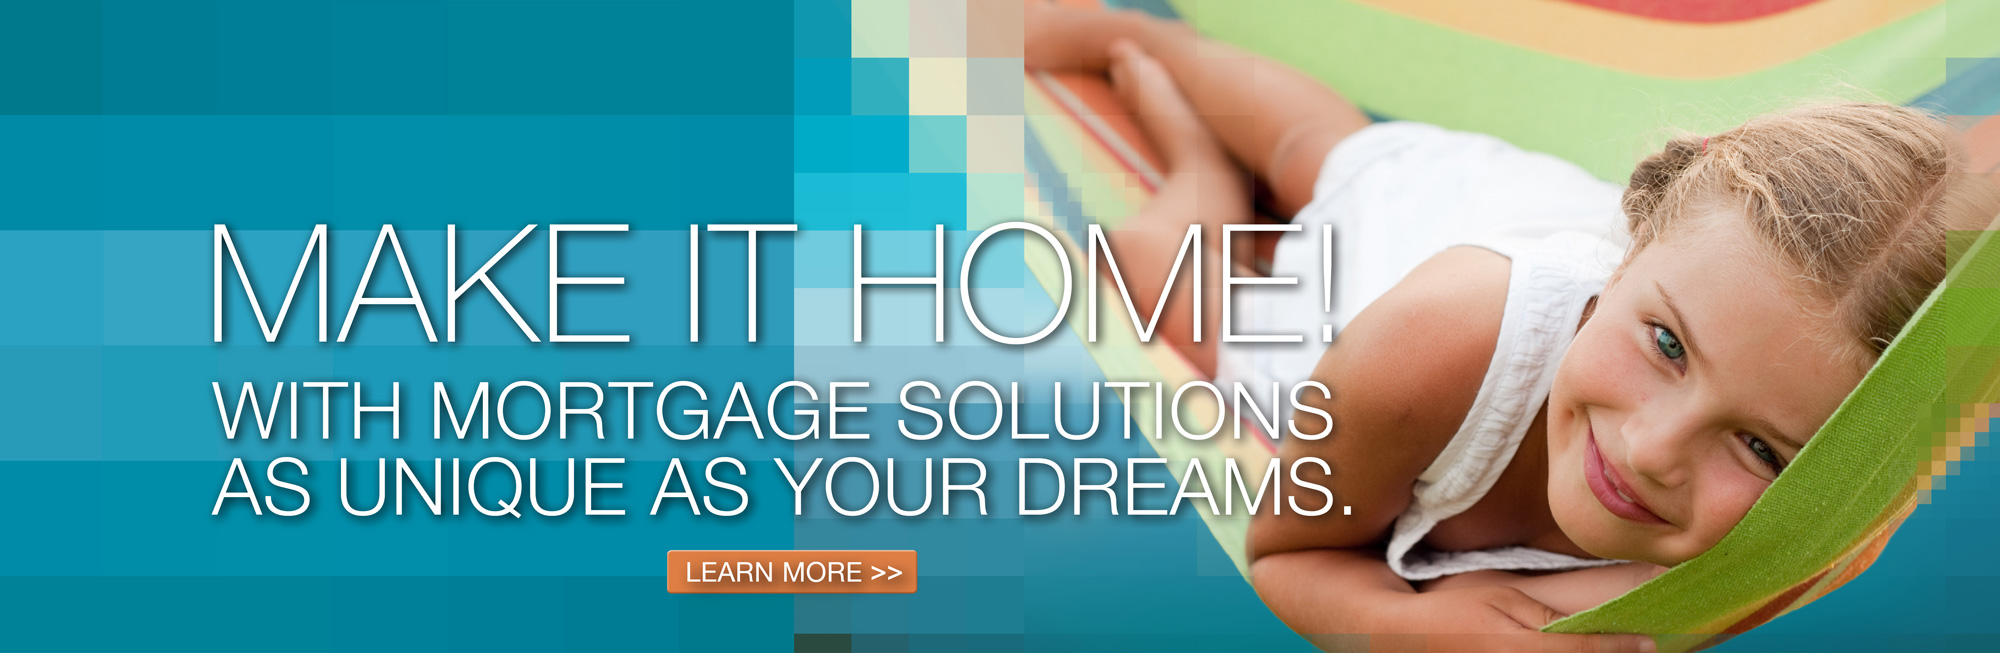 Our mortgage team can help you make it home with mortgage solutions as unique as your dreams. Click to learn more.